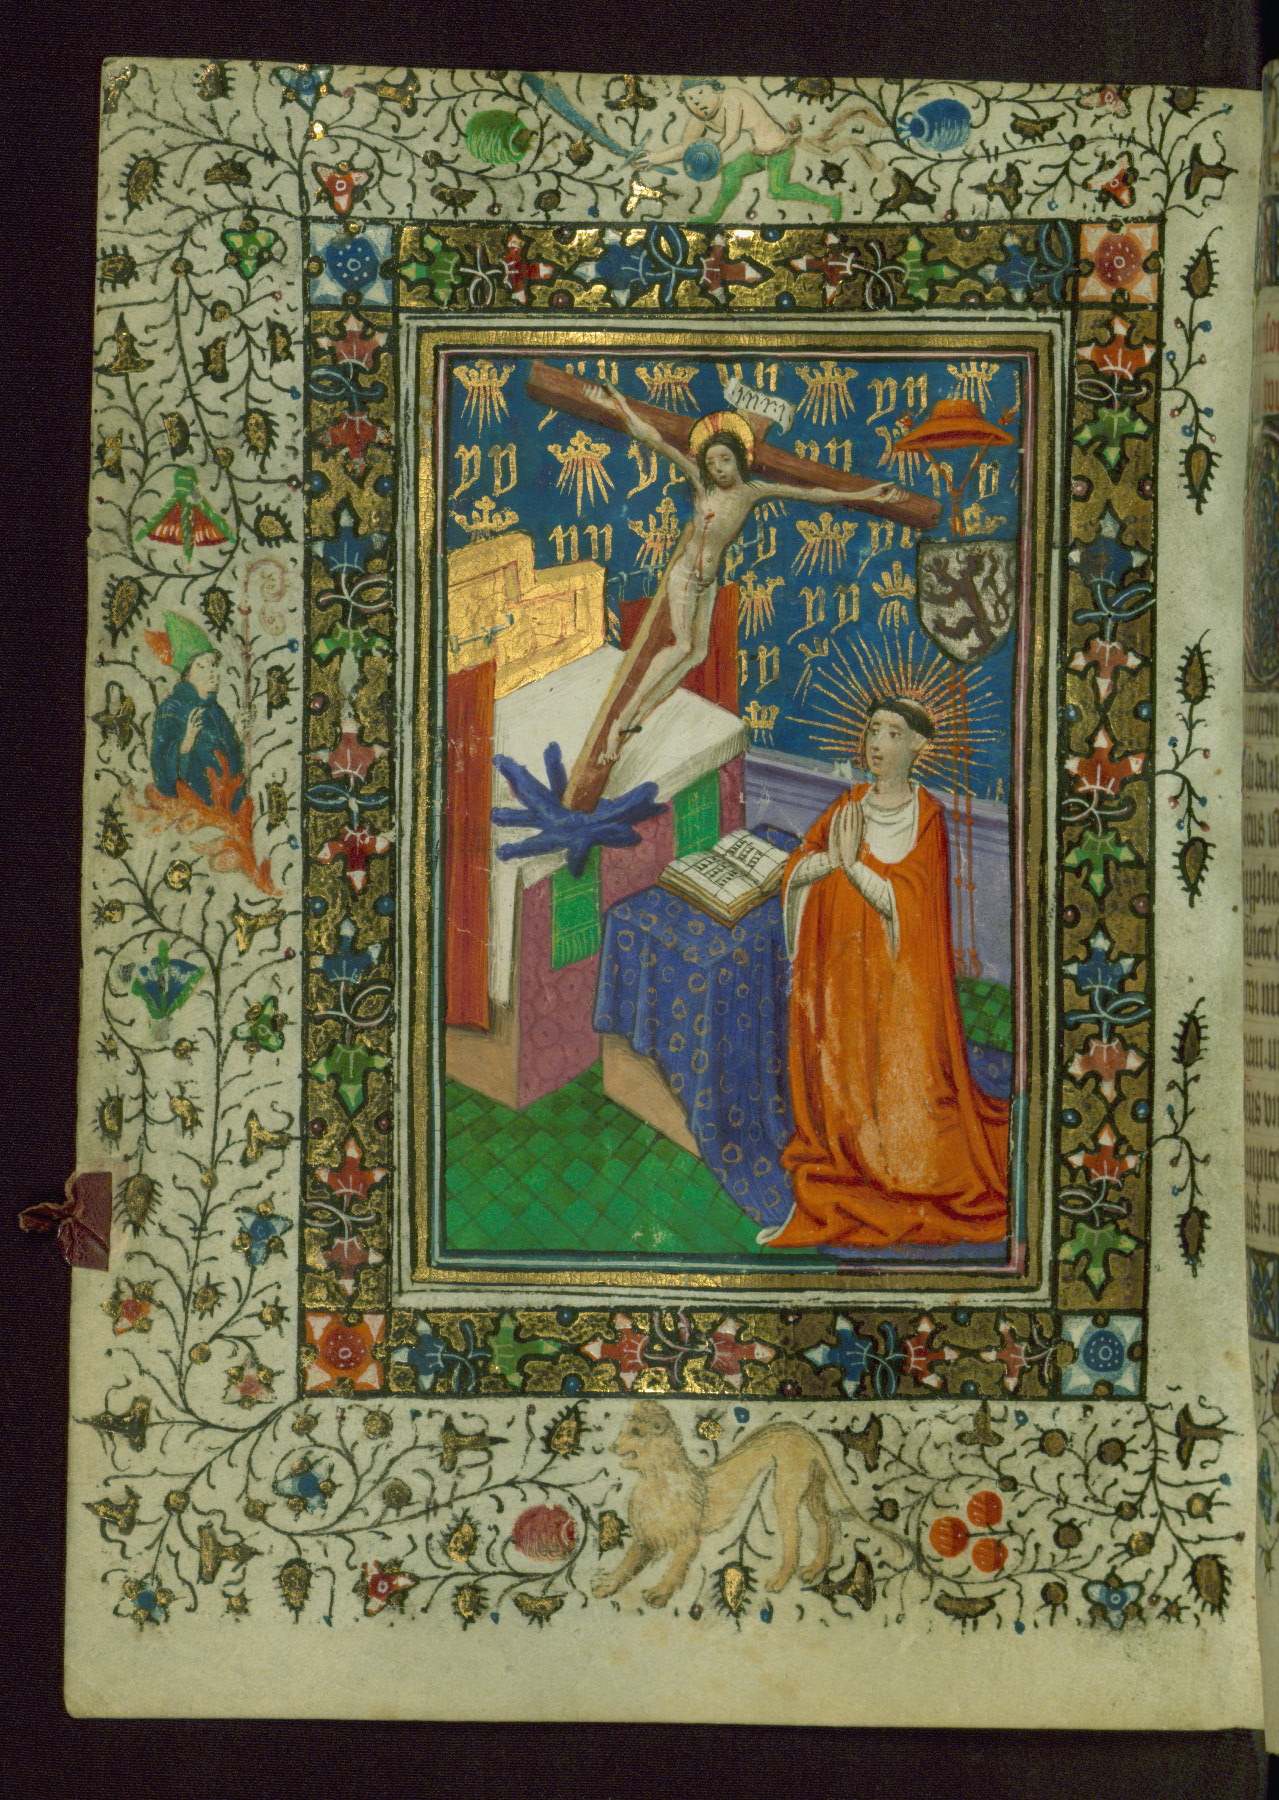 http://www.thedigitalwalters.org/Data/WaltersManuscripts/W211/data/W.211/sap/W211_000332_sap.jpg